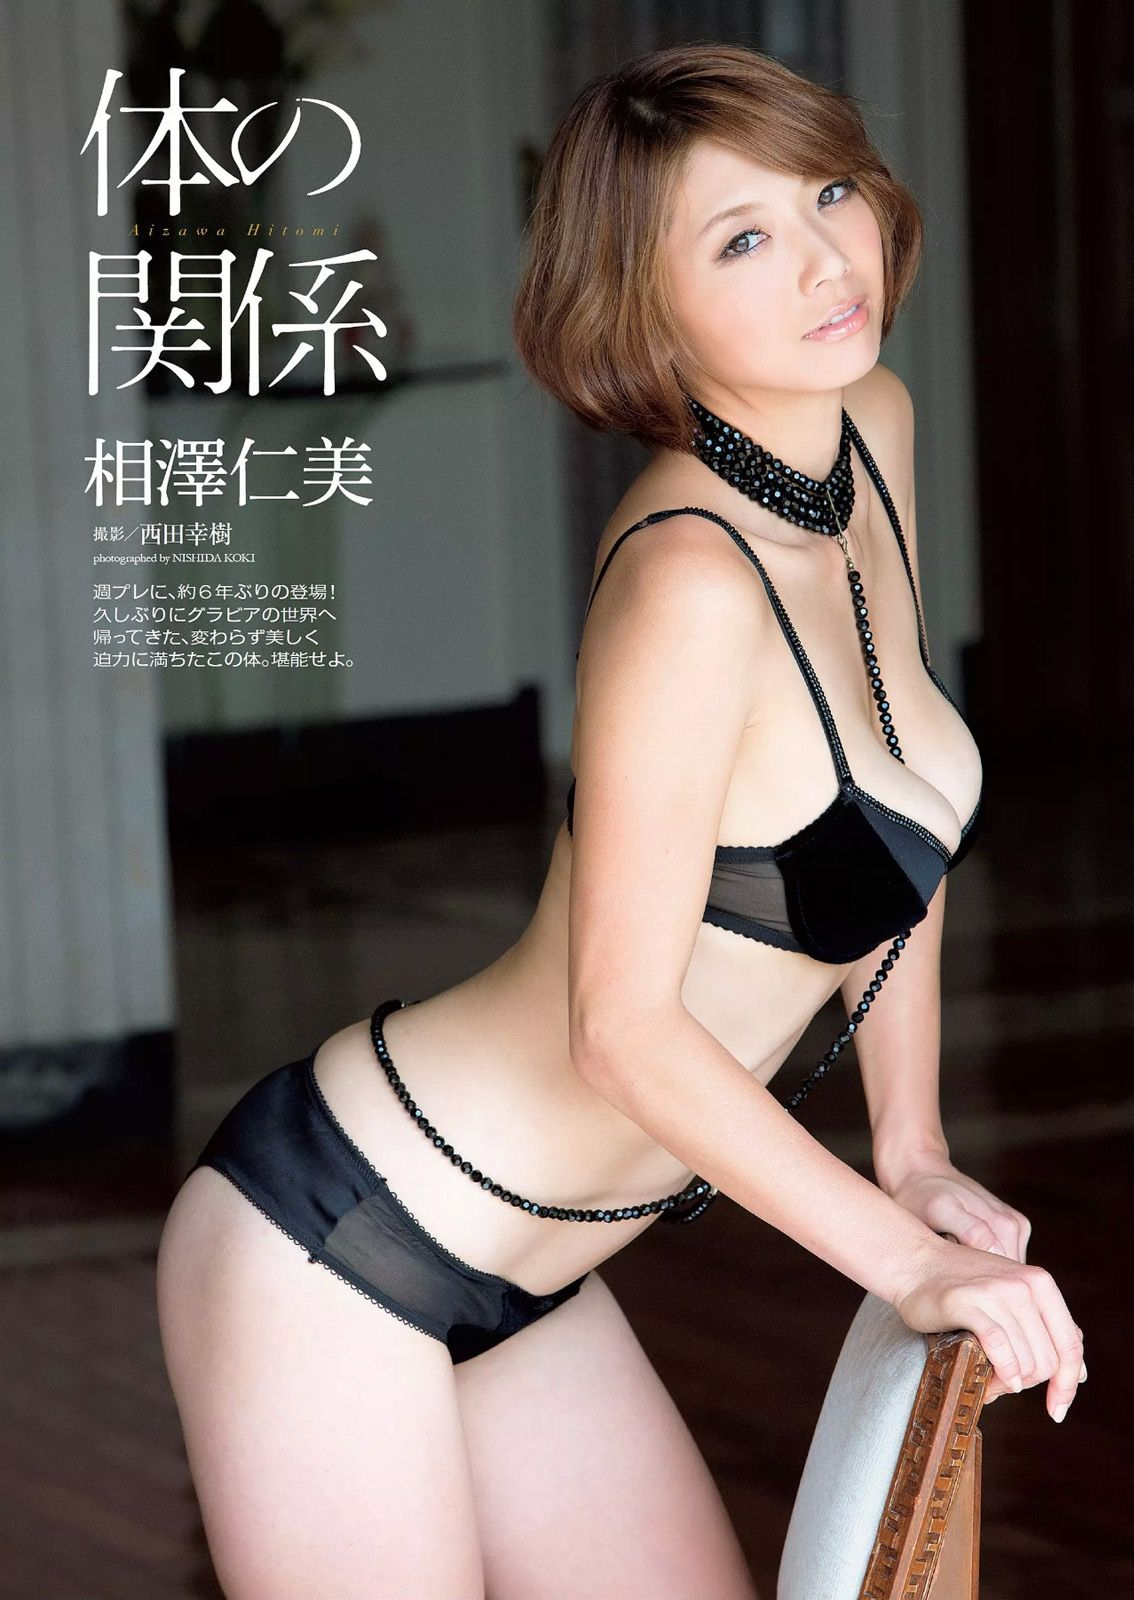 相澤仁美 Hitomi Aizawa 相澤仁美 Weekly Playboy Magazine 2014 No.52